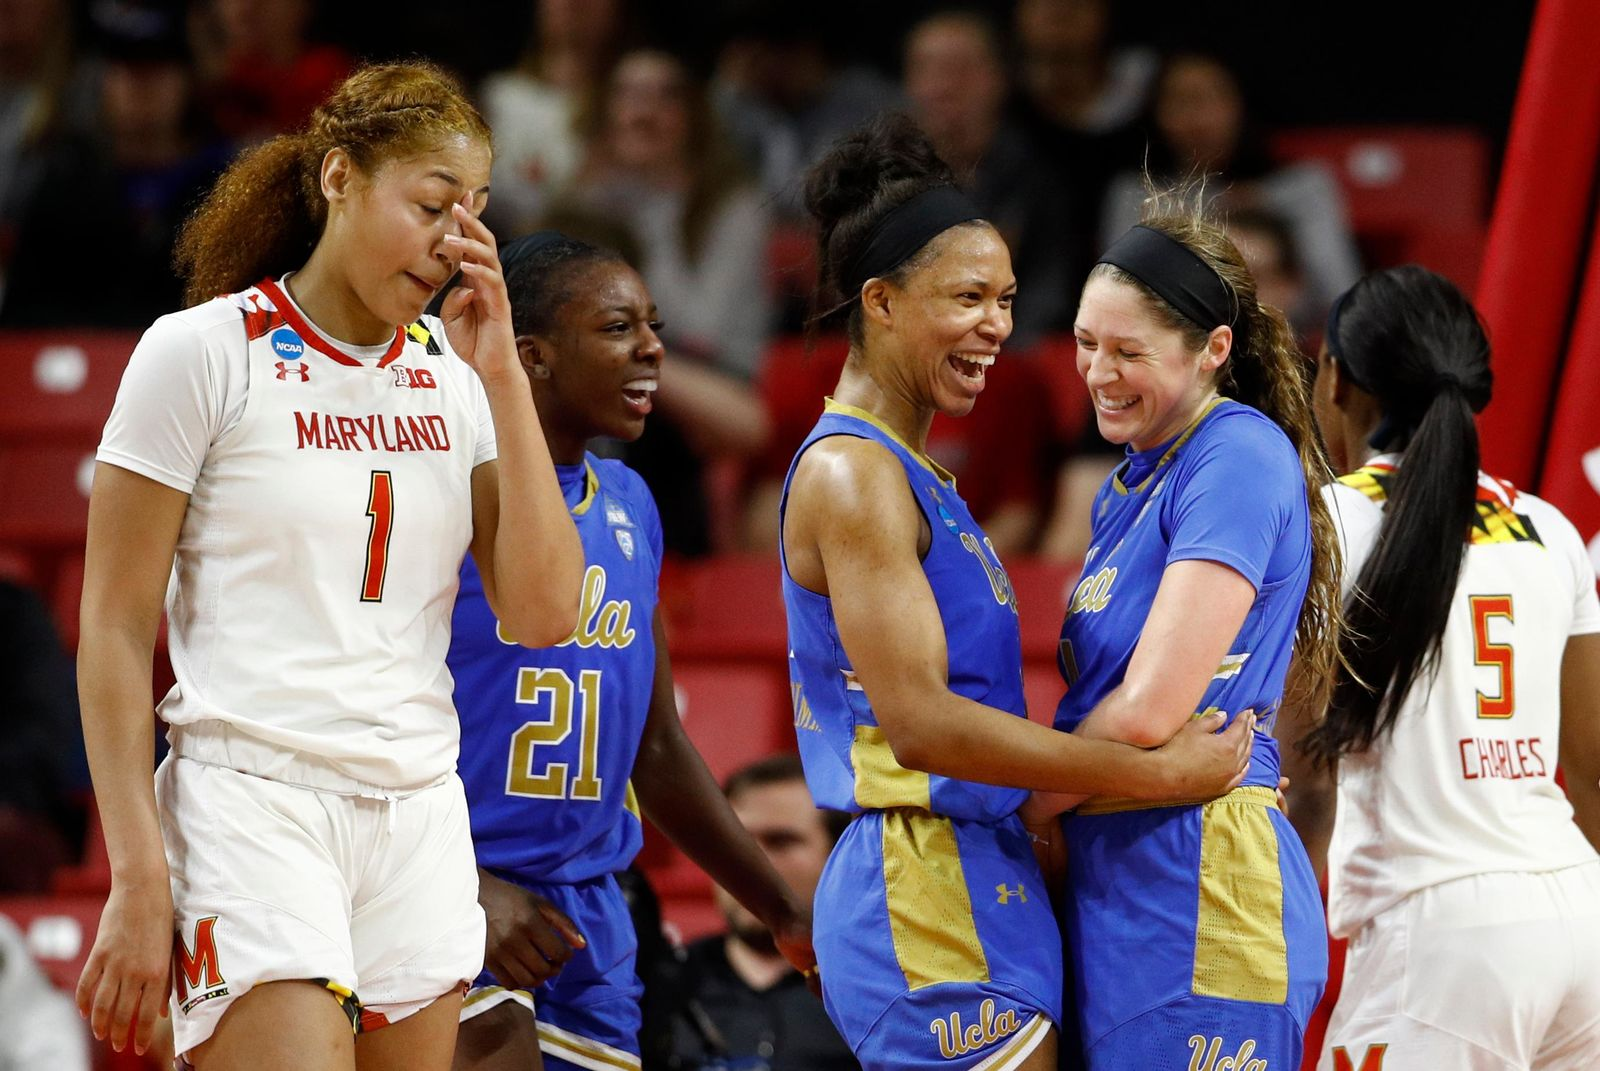 UCLA guard Lindsey Corsaro, second from right, celebrates with teammates Lajahna Drummer, third from right, and Michaela Onyenwere (21), nearMaryland forward Shakira Austin (1), after Corsaro was fouled iduringthe second half of a second-round game in the NCAA women's college basketball tournament Monday, March 25, 2019, in College Park, Md. UCLA won 85-80. (AP Photo/Patrick Semansky)